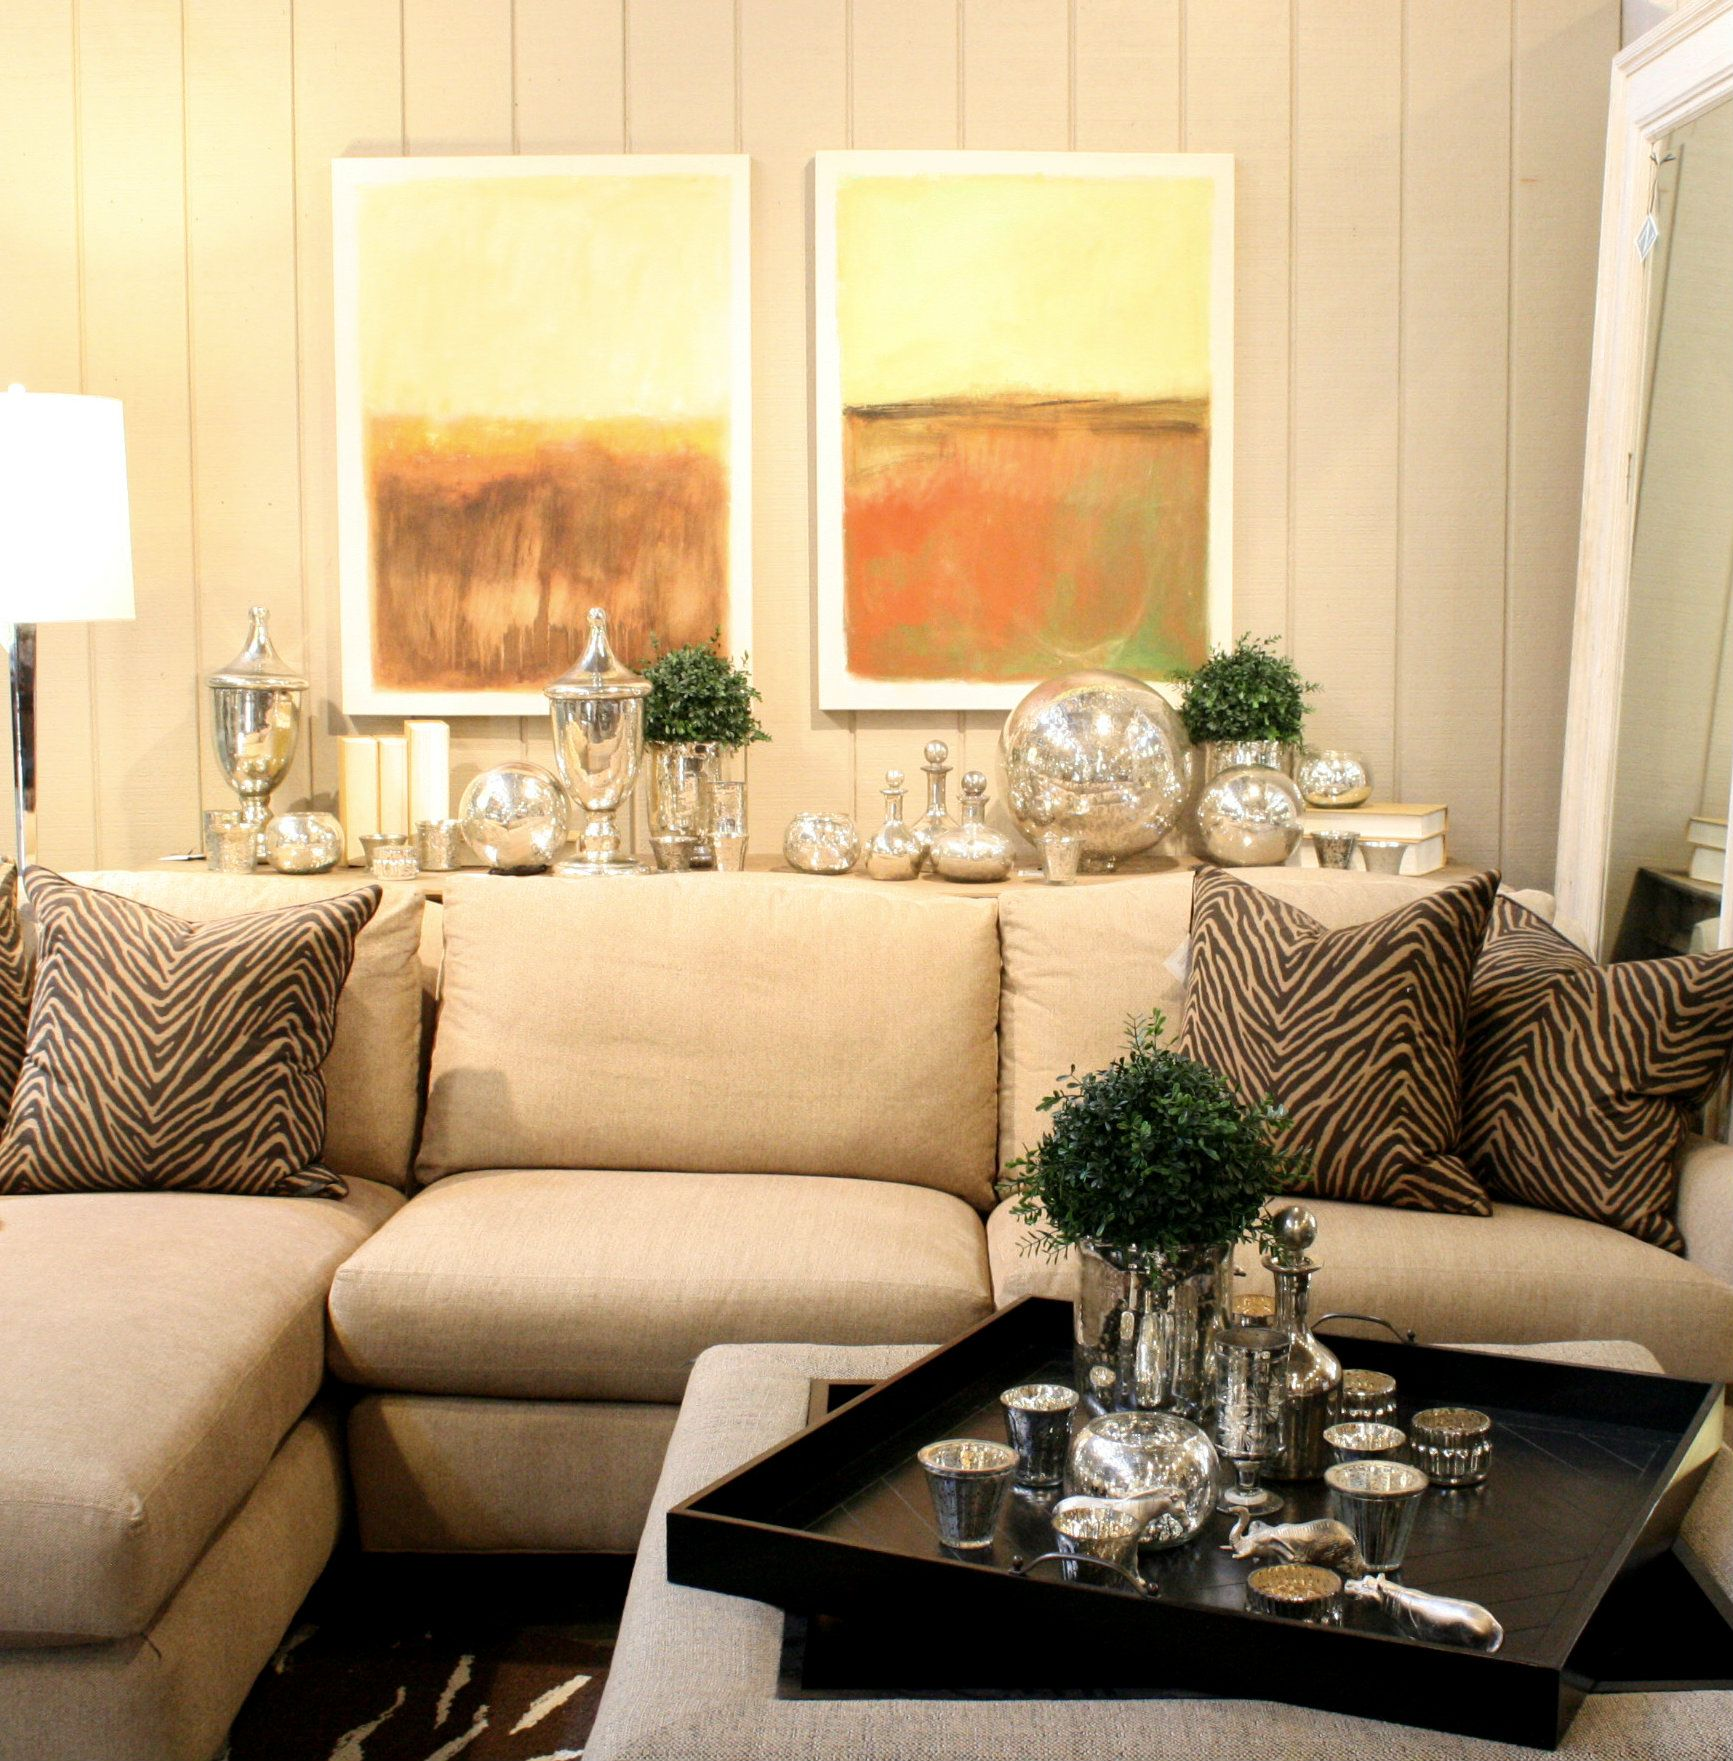 this would look nice in my living room Linato sofa with zebra accent ...